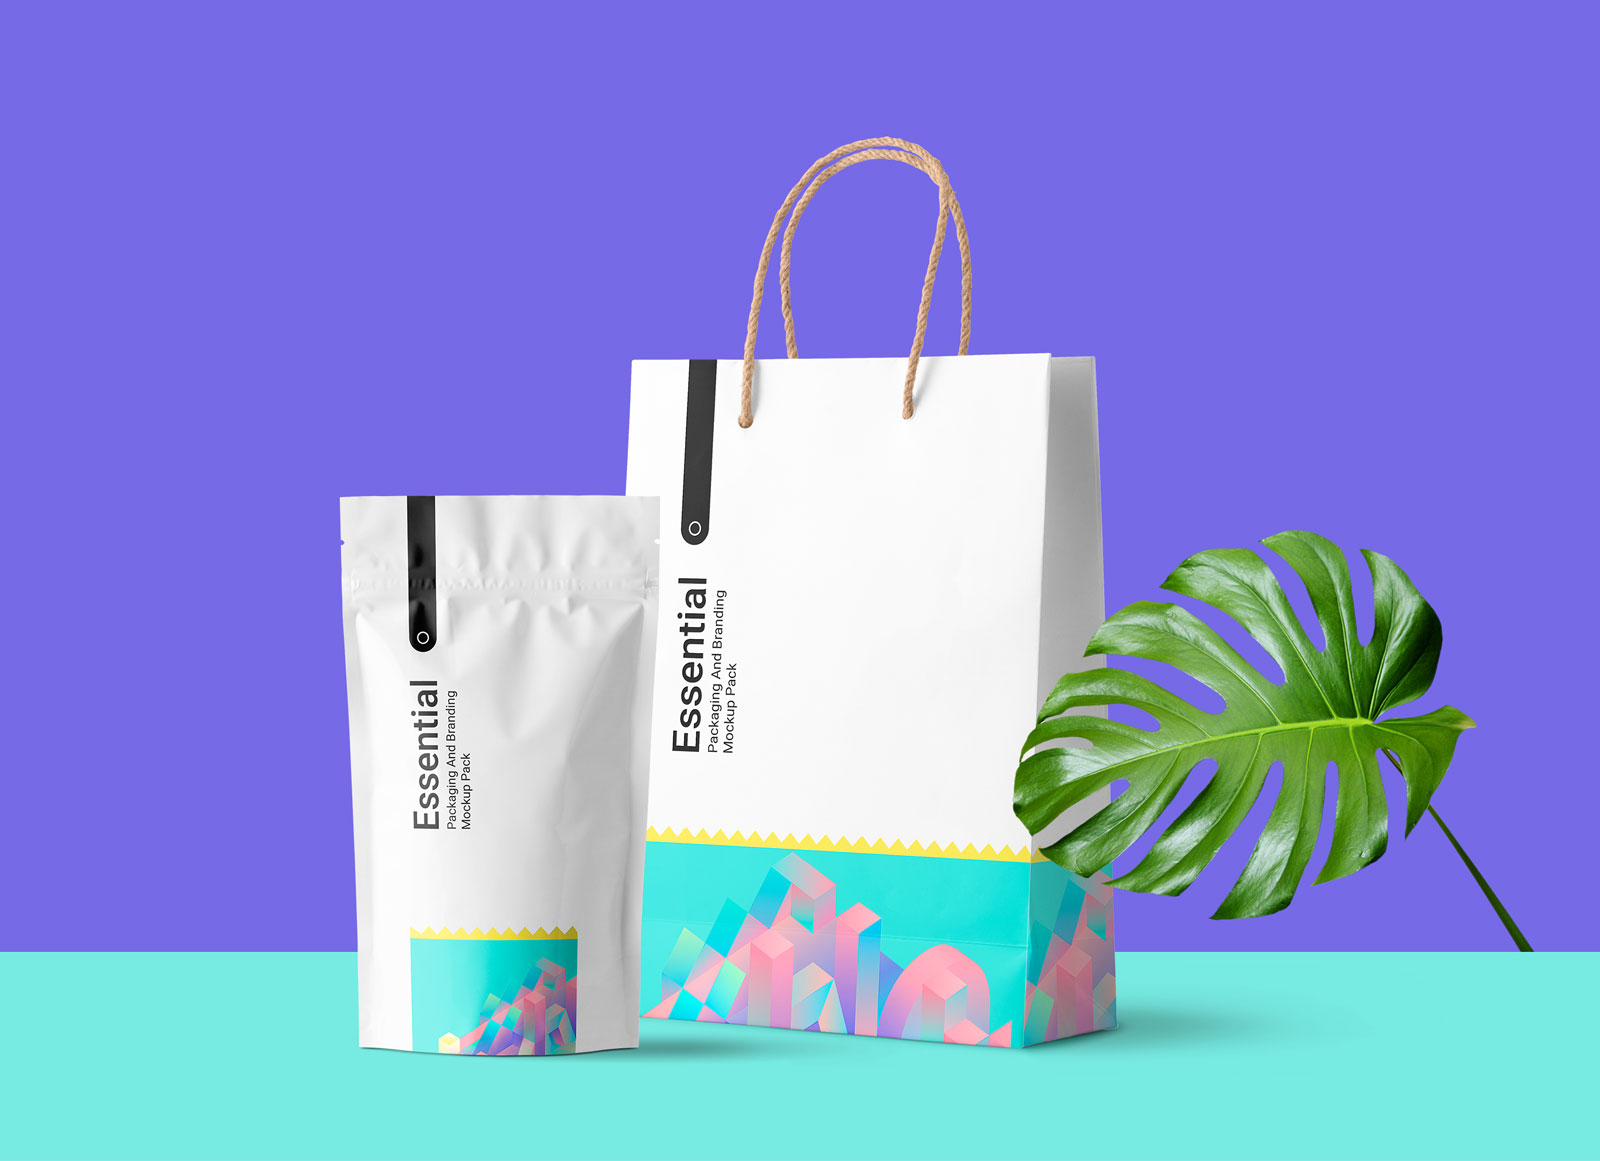 Free-Paper-Shopping-Bag-&-Plastic-Pouch-Bag-Mockup-PSD